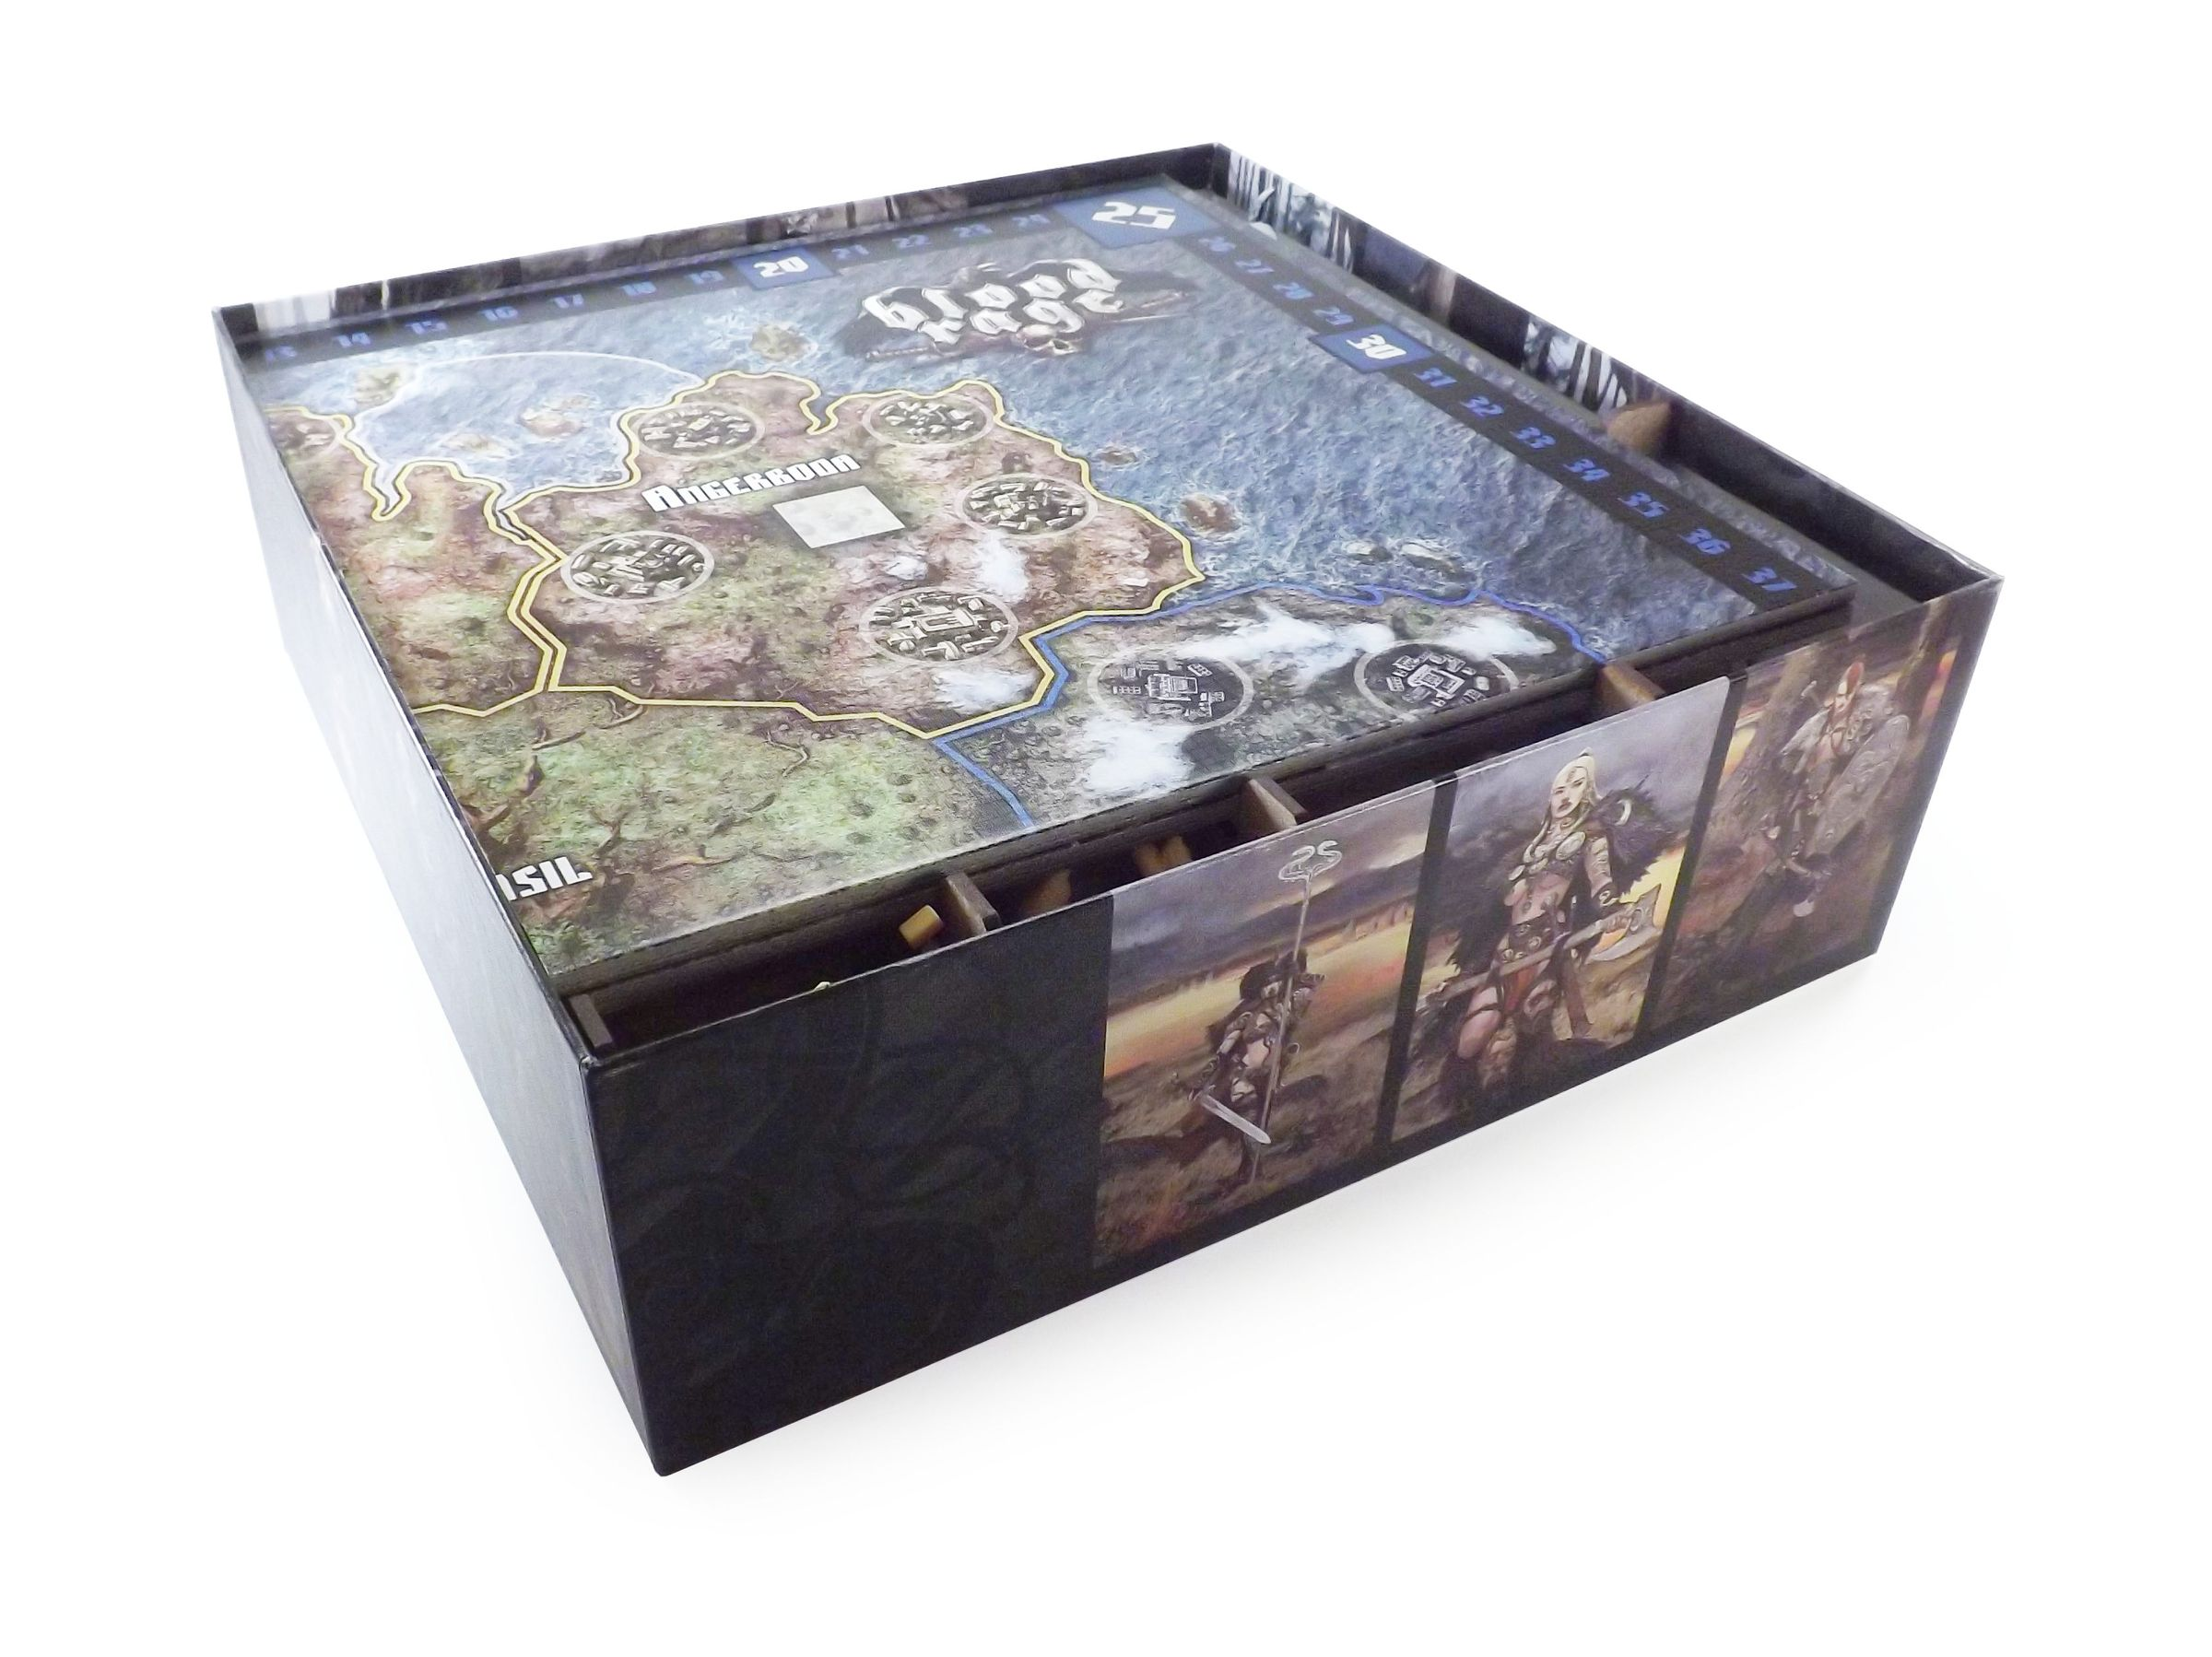 Boardgame Organizer for Blood Rage and Mystics of Midgard, Gods of Asgard, 5 Players and all Kickstarter Exclusives